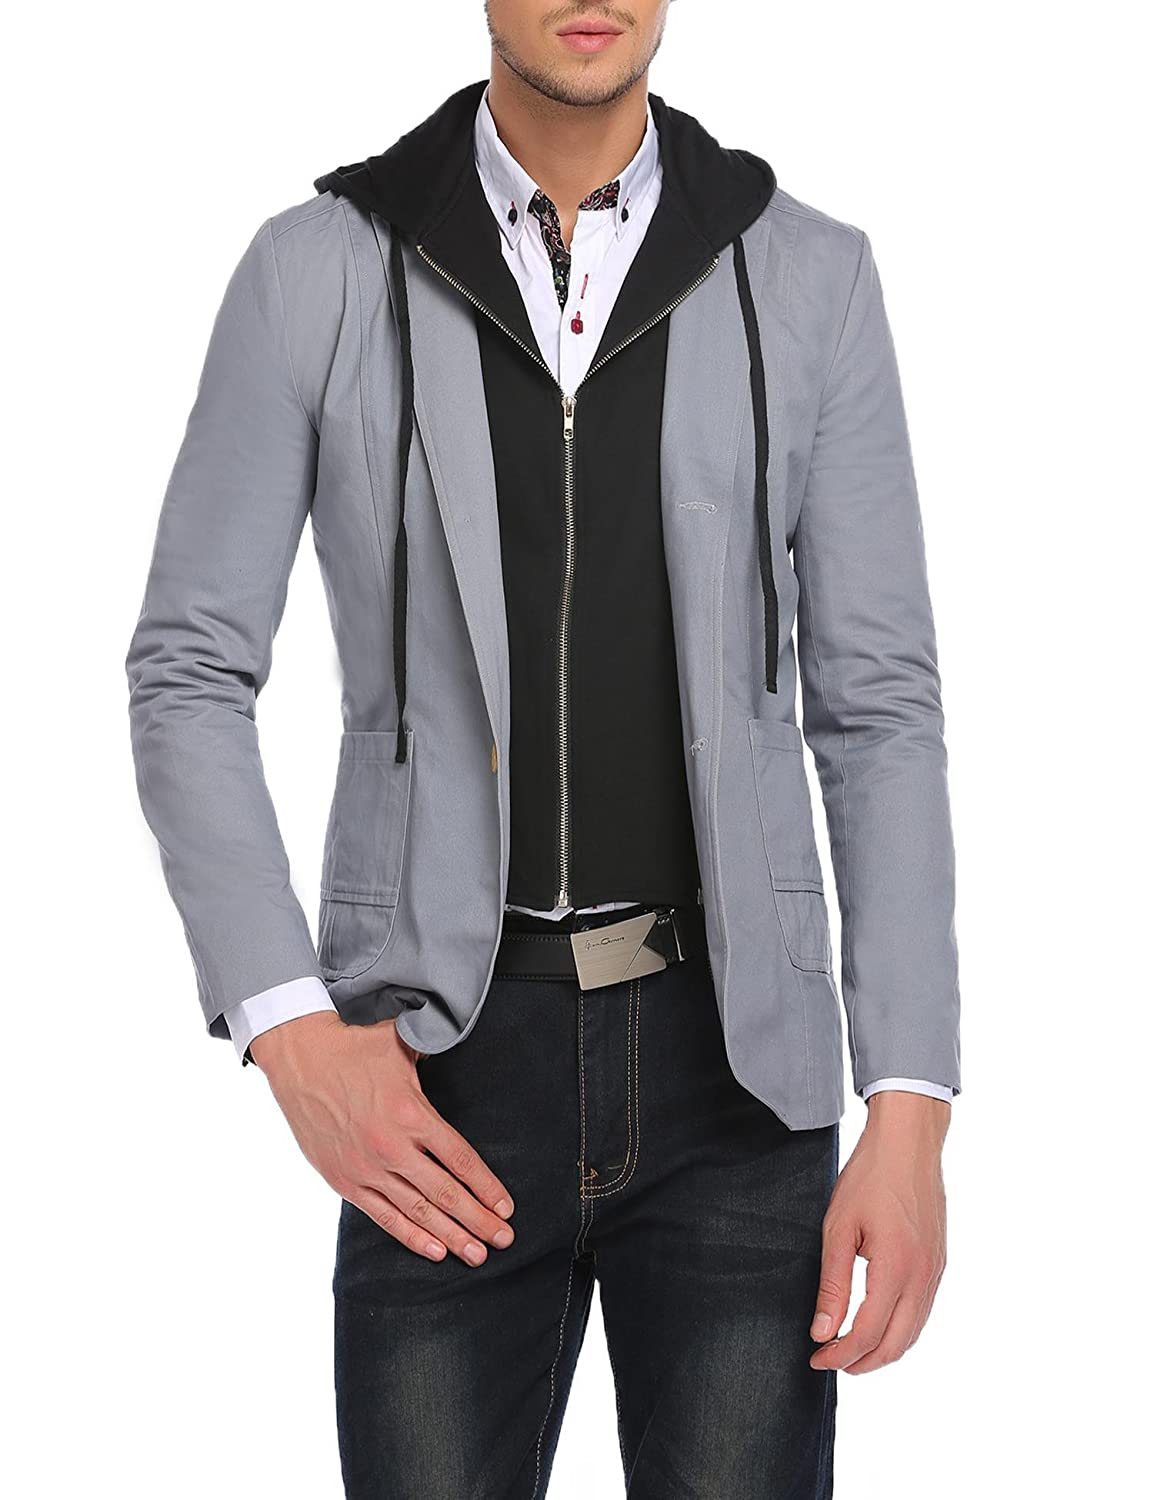 Coofandy Men's Casual Regular Fit Sports Jacket Suit Blazer With Removable Hood